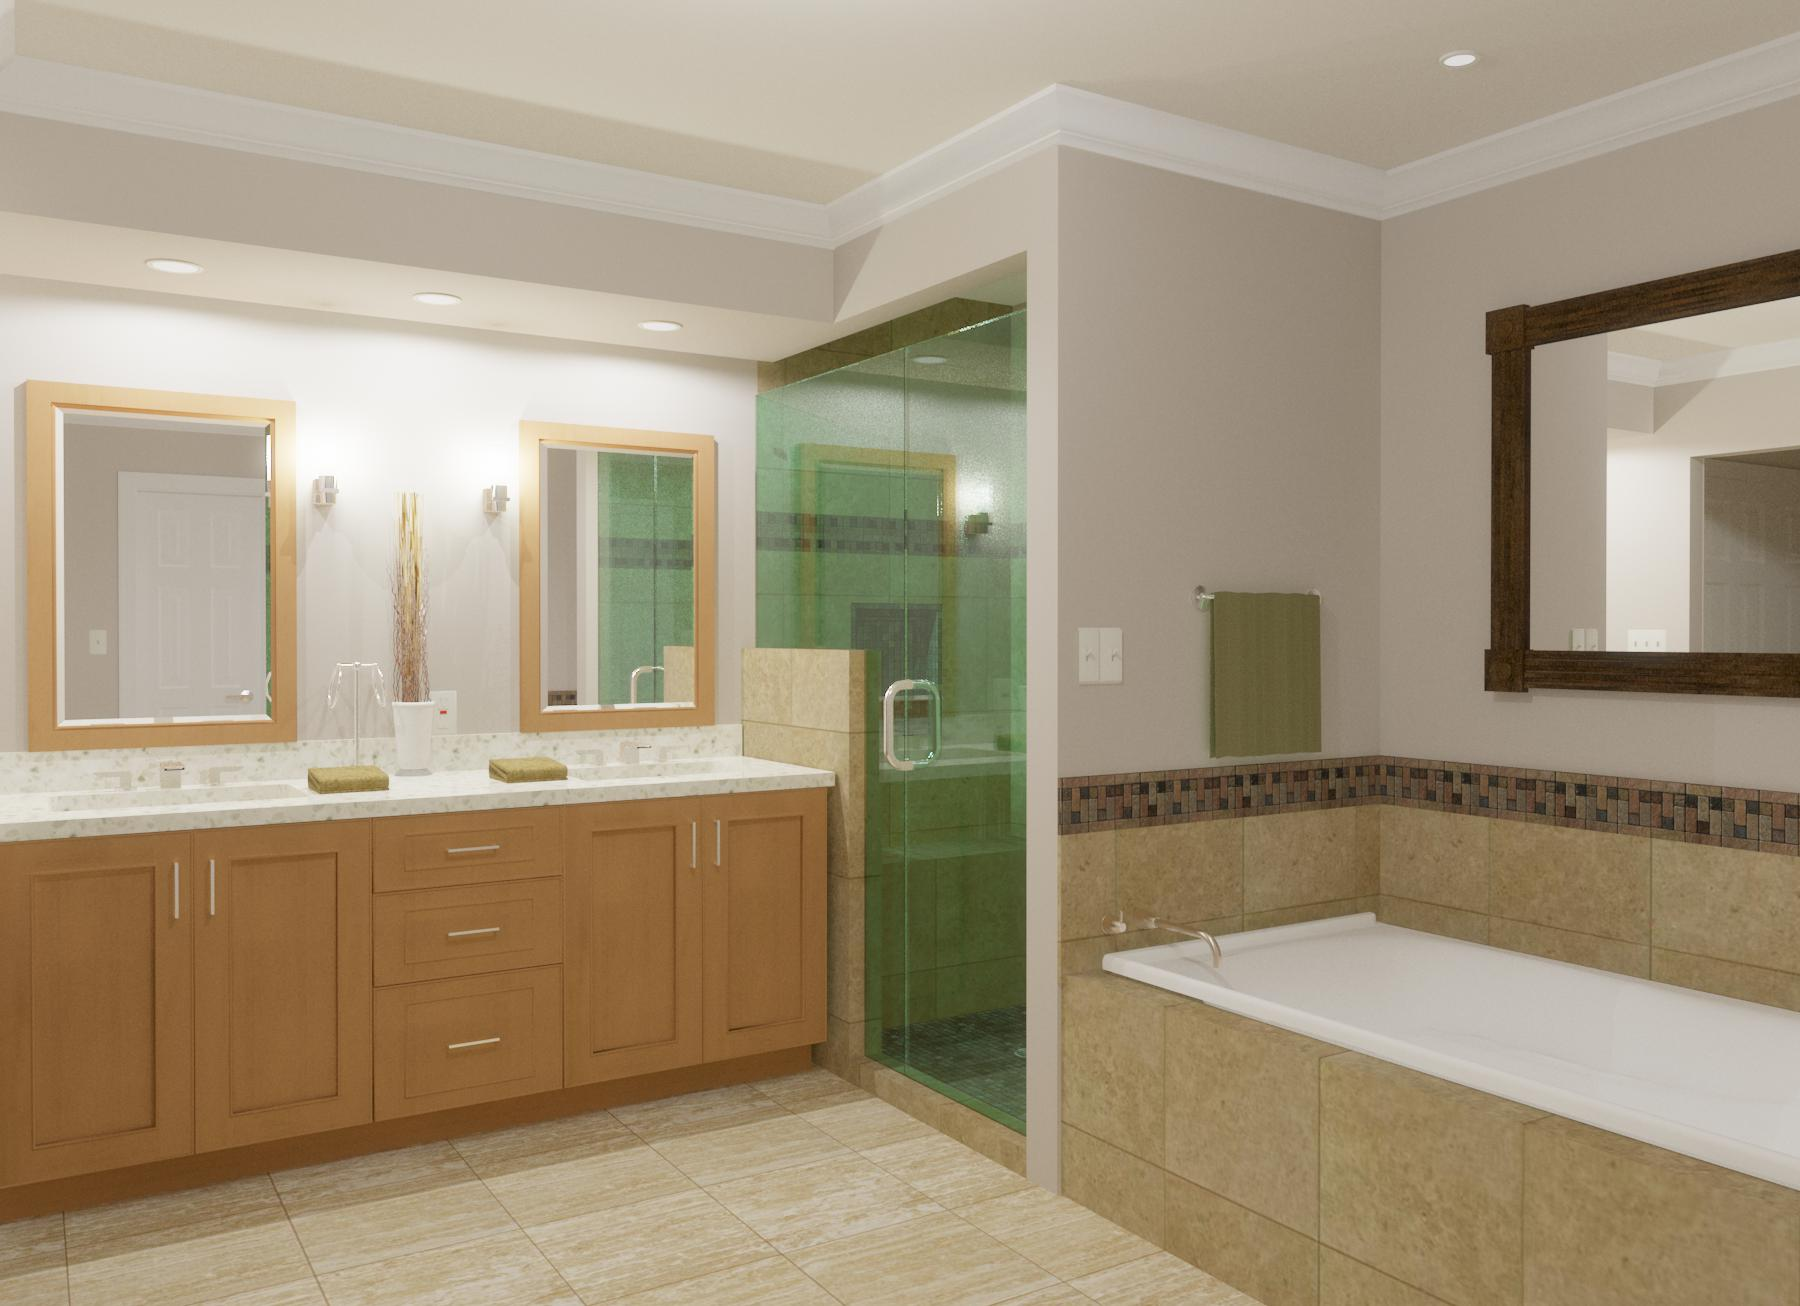 Design-01-New-Master-Bathroom